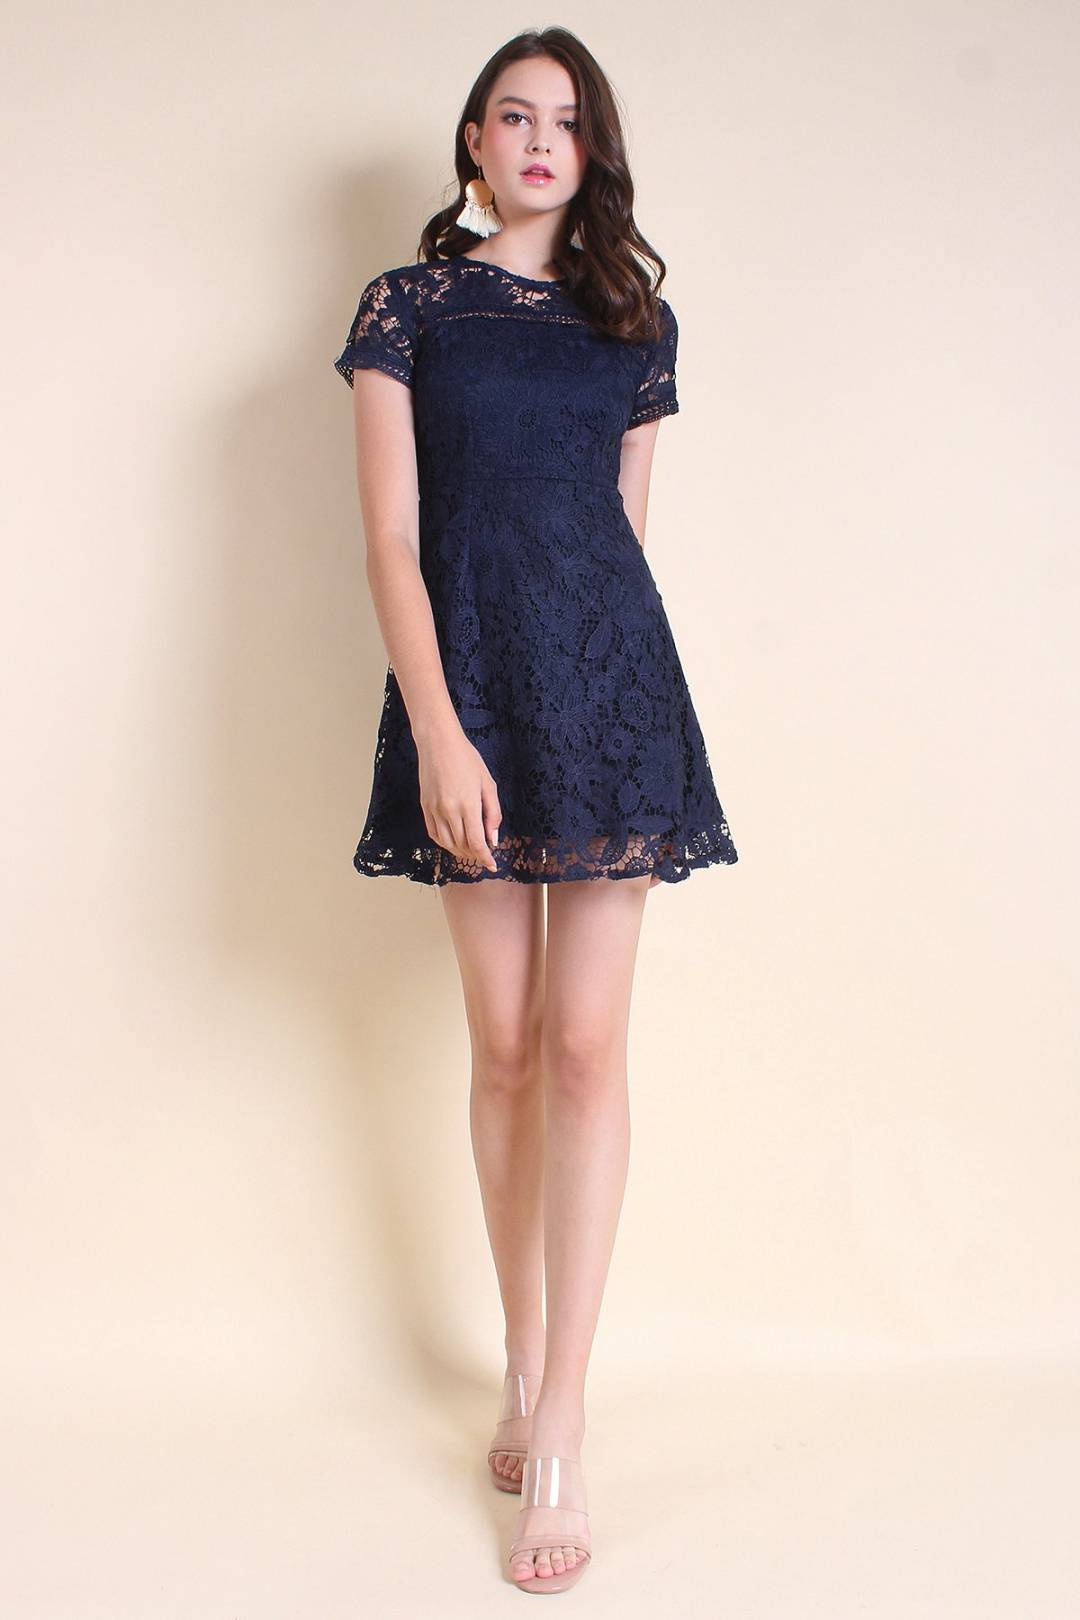 MADEBYNM COVA SLEEVE A-LINE CROCHET LACE DRESS IN NAVY BLUE [XS/S/M/L]